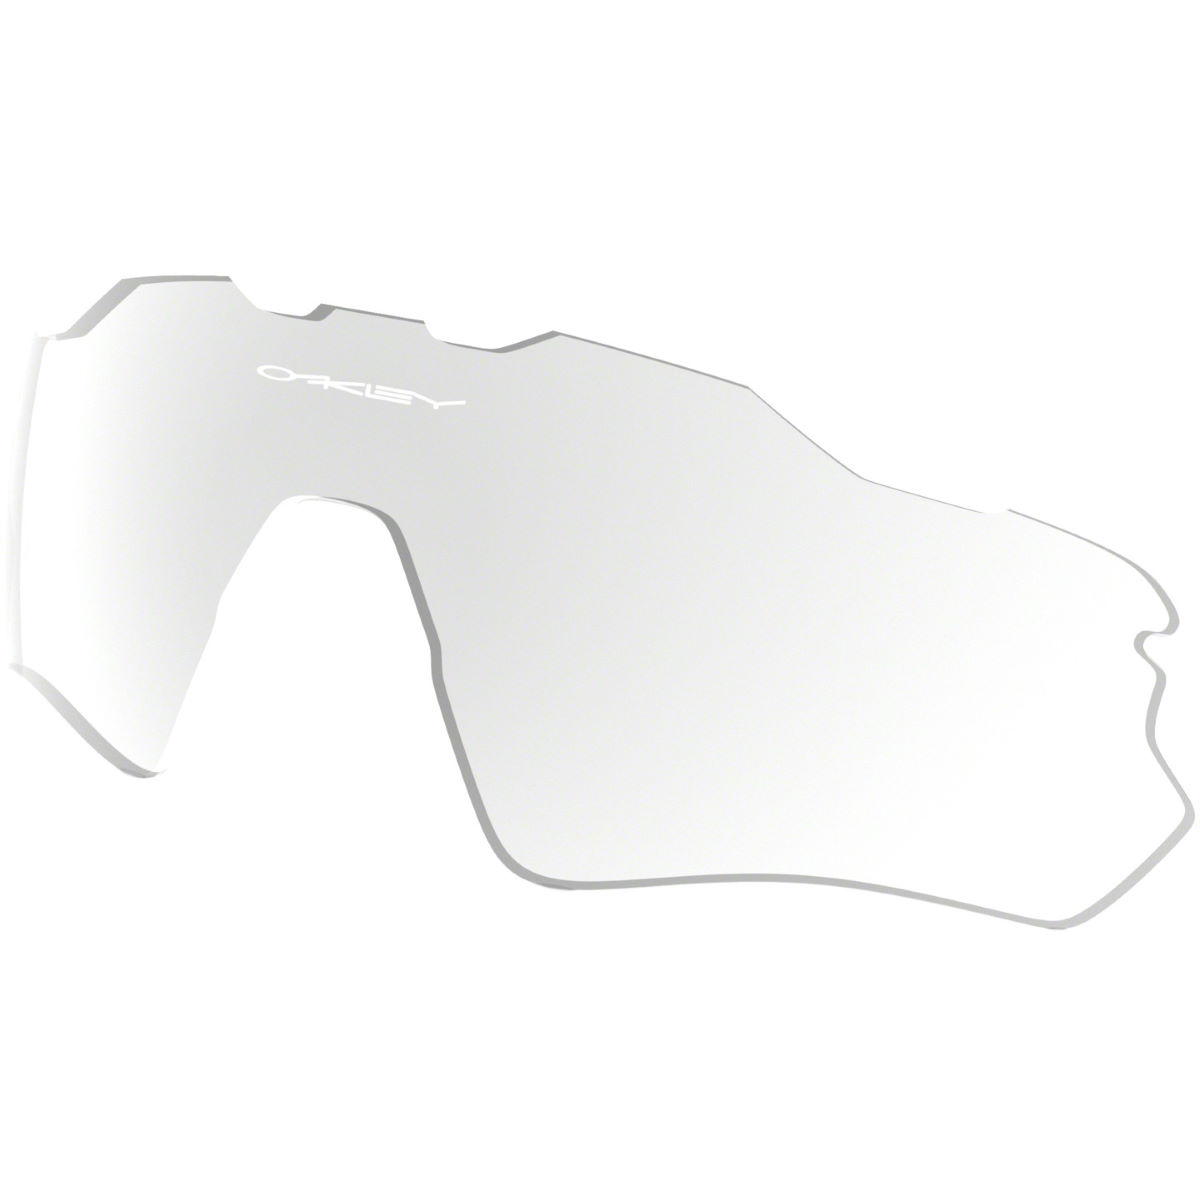 Oakley Radar EV Replacement Lens Clear - One Size Clear